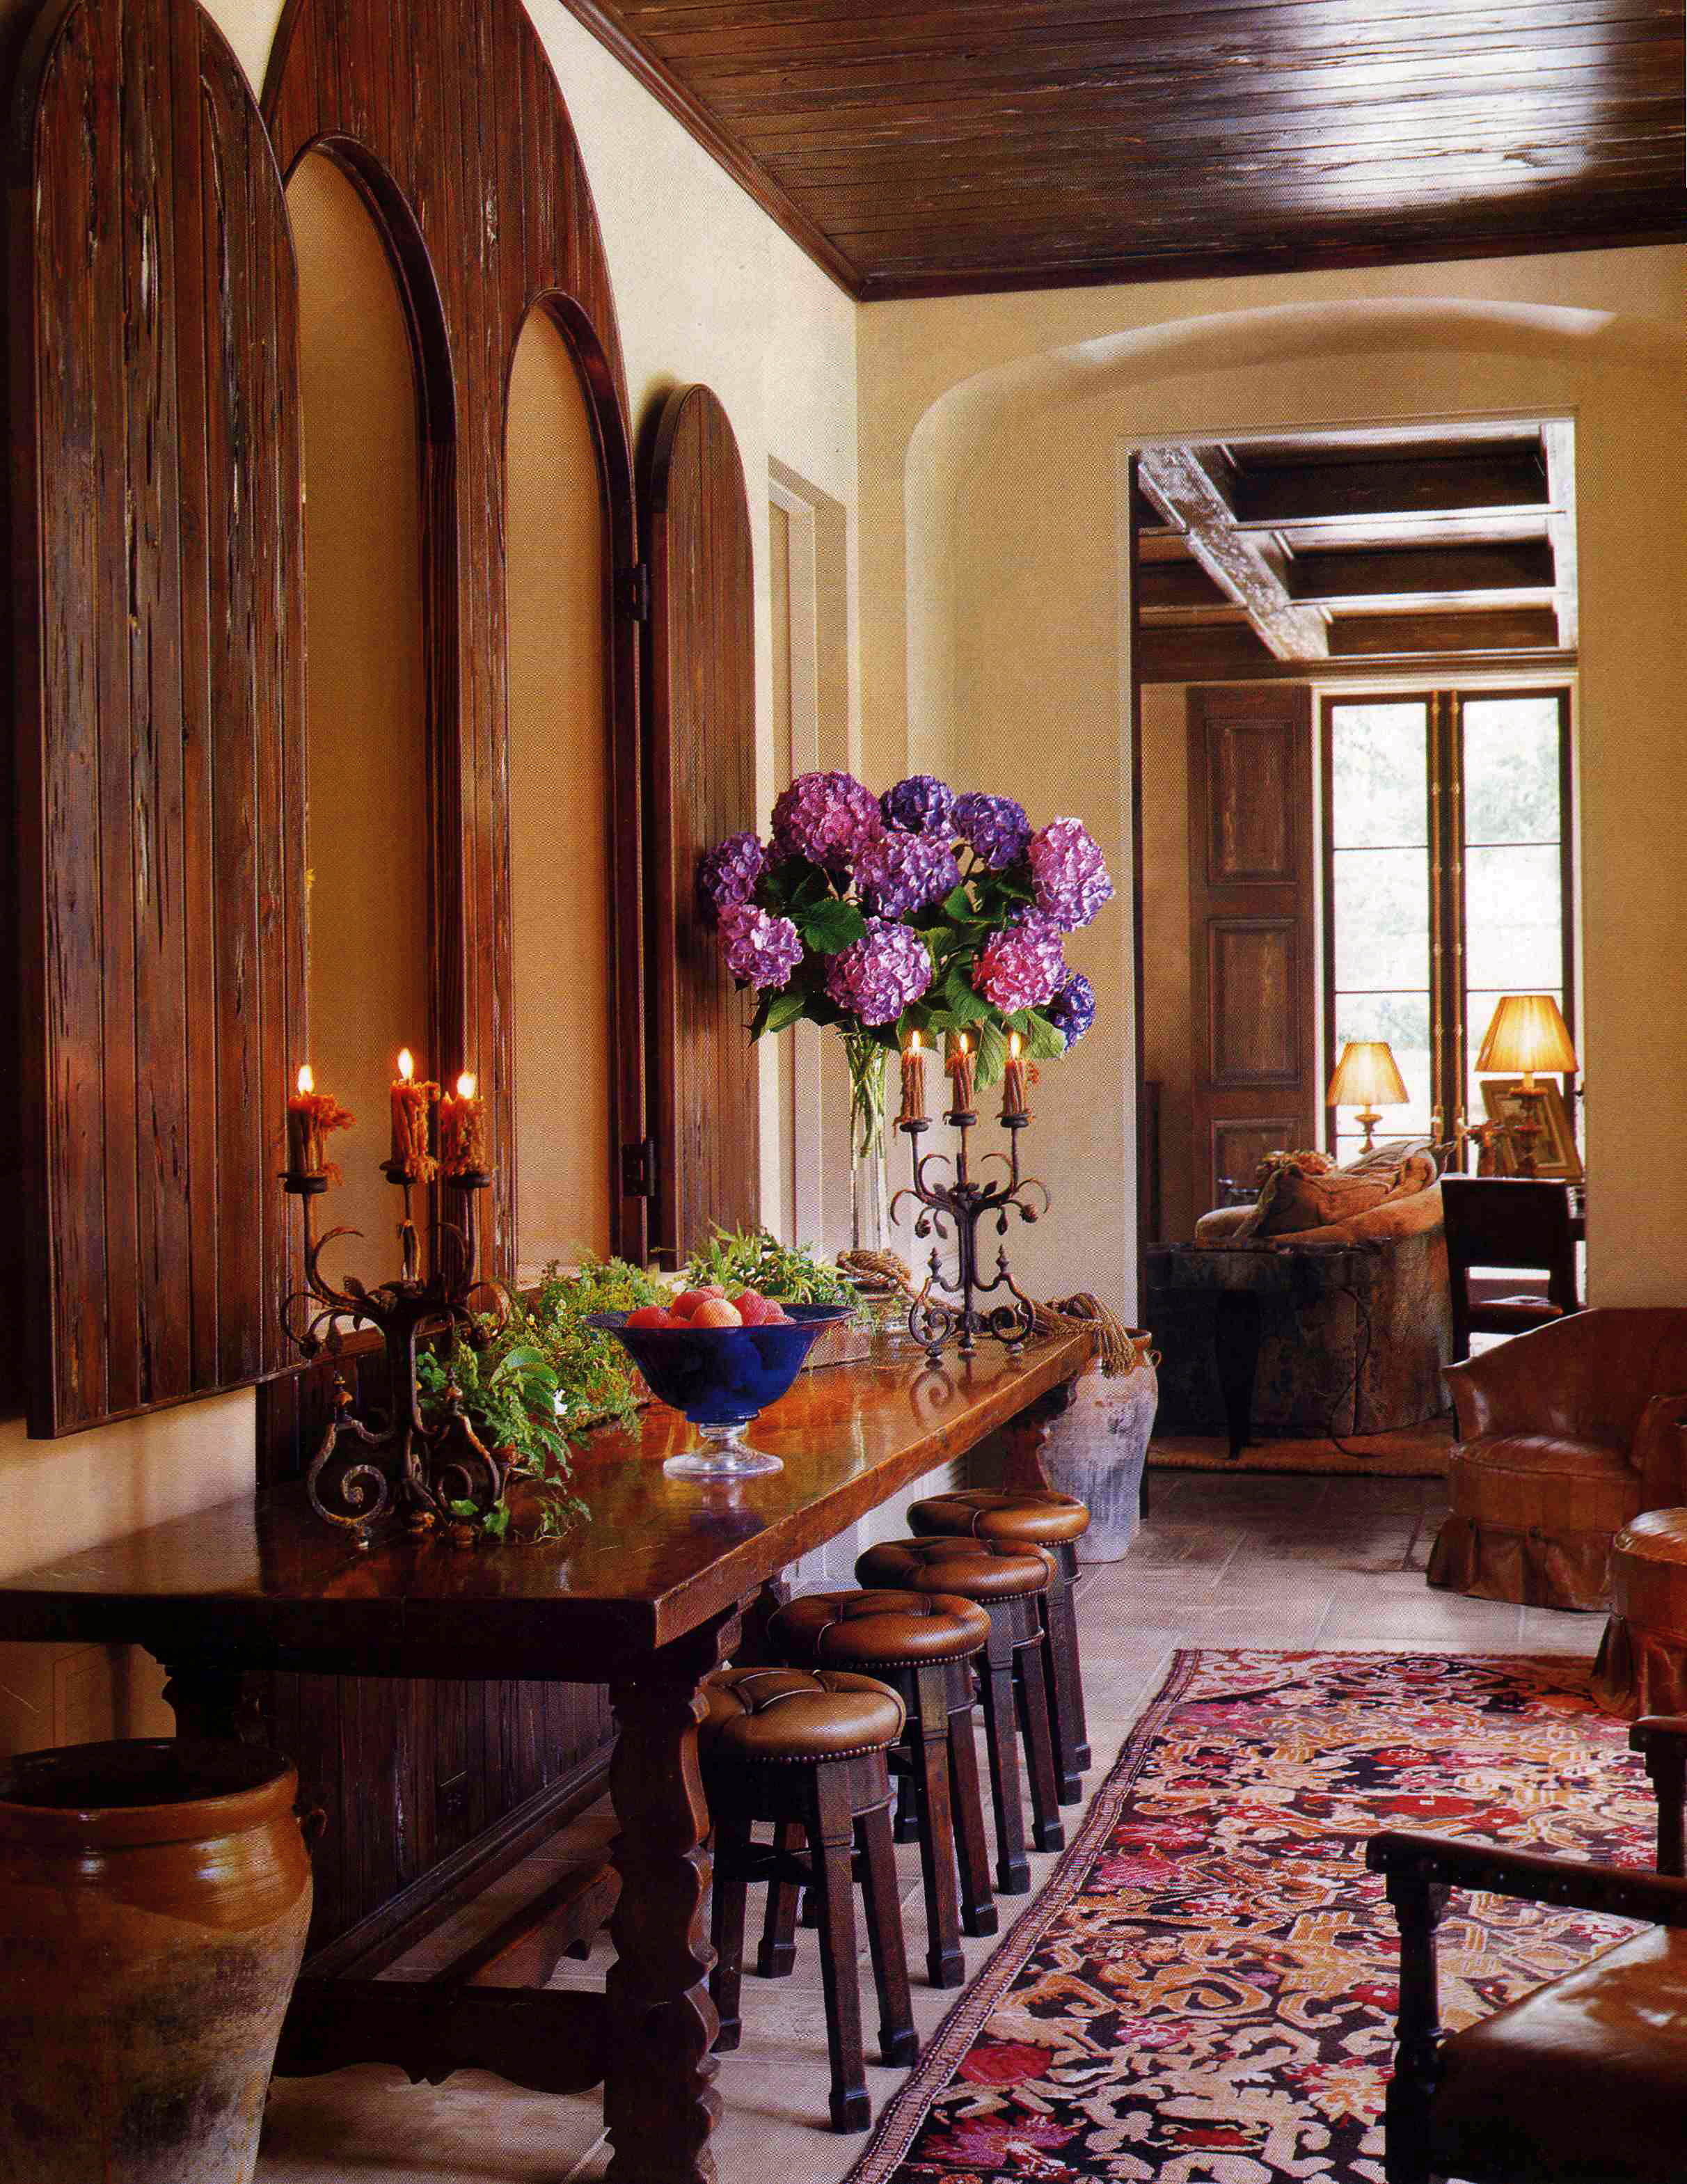 Italian Country Home & Tuscan Interior Design